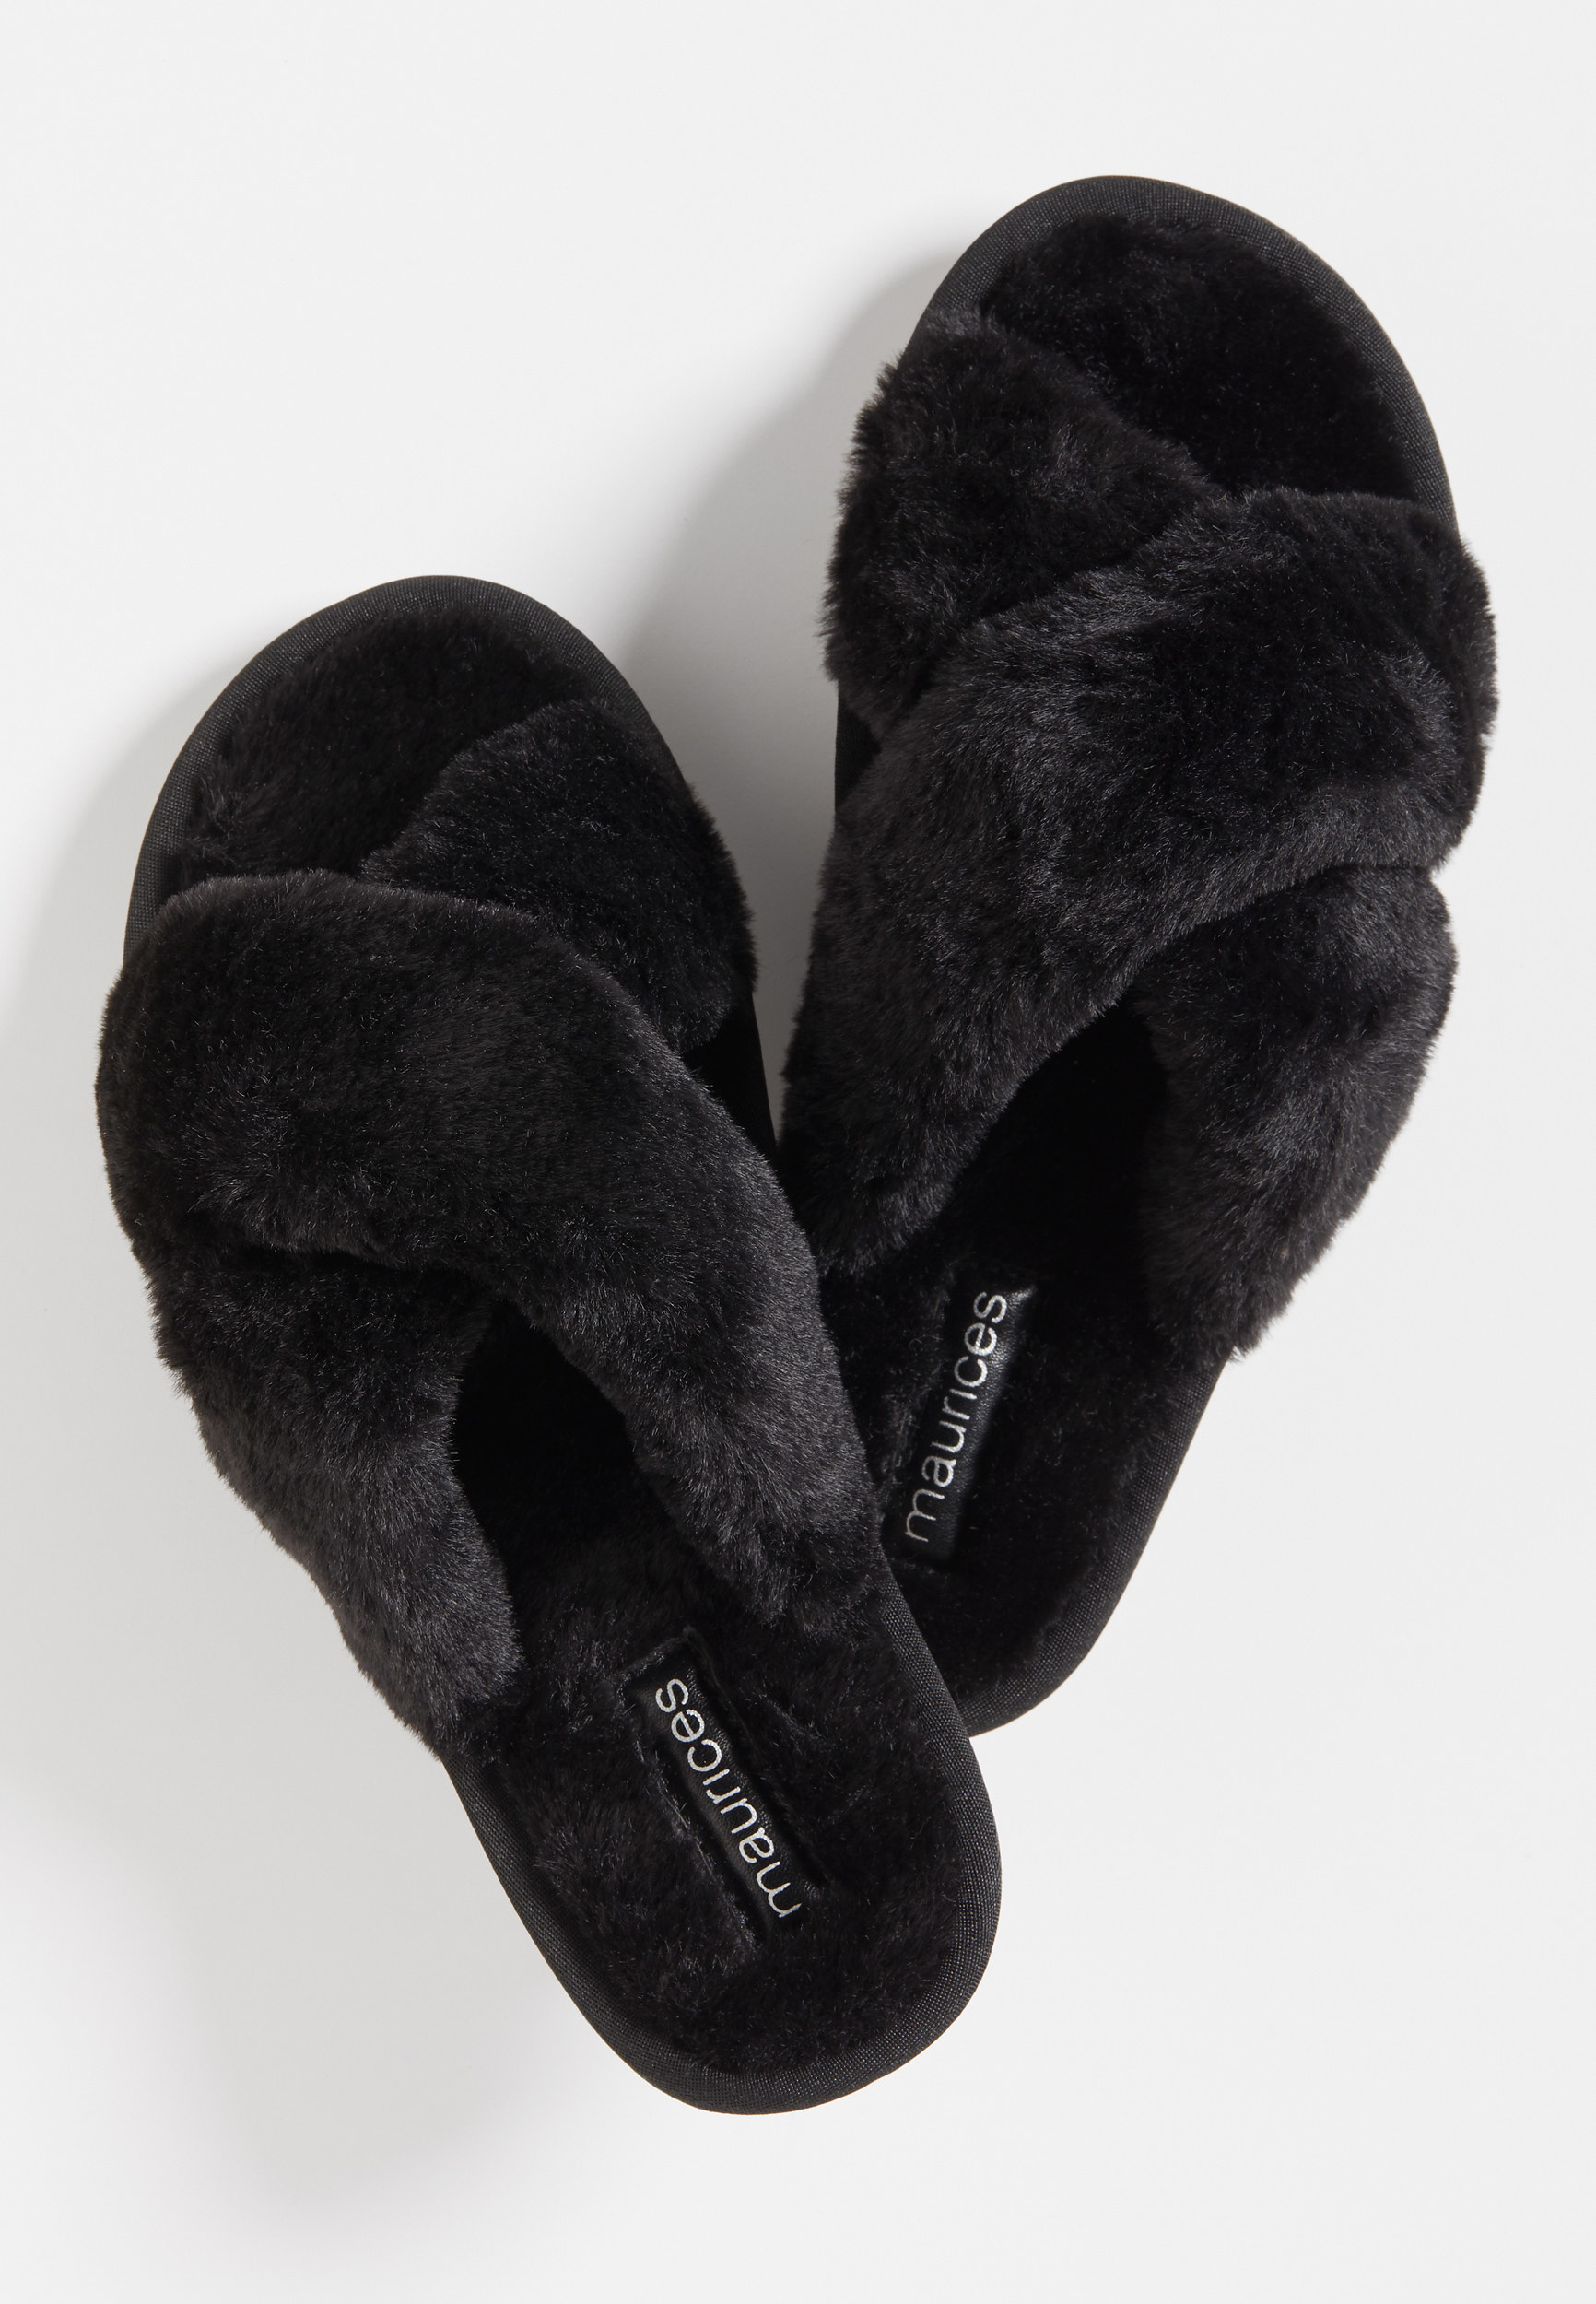 the black faux fur slippers